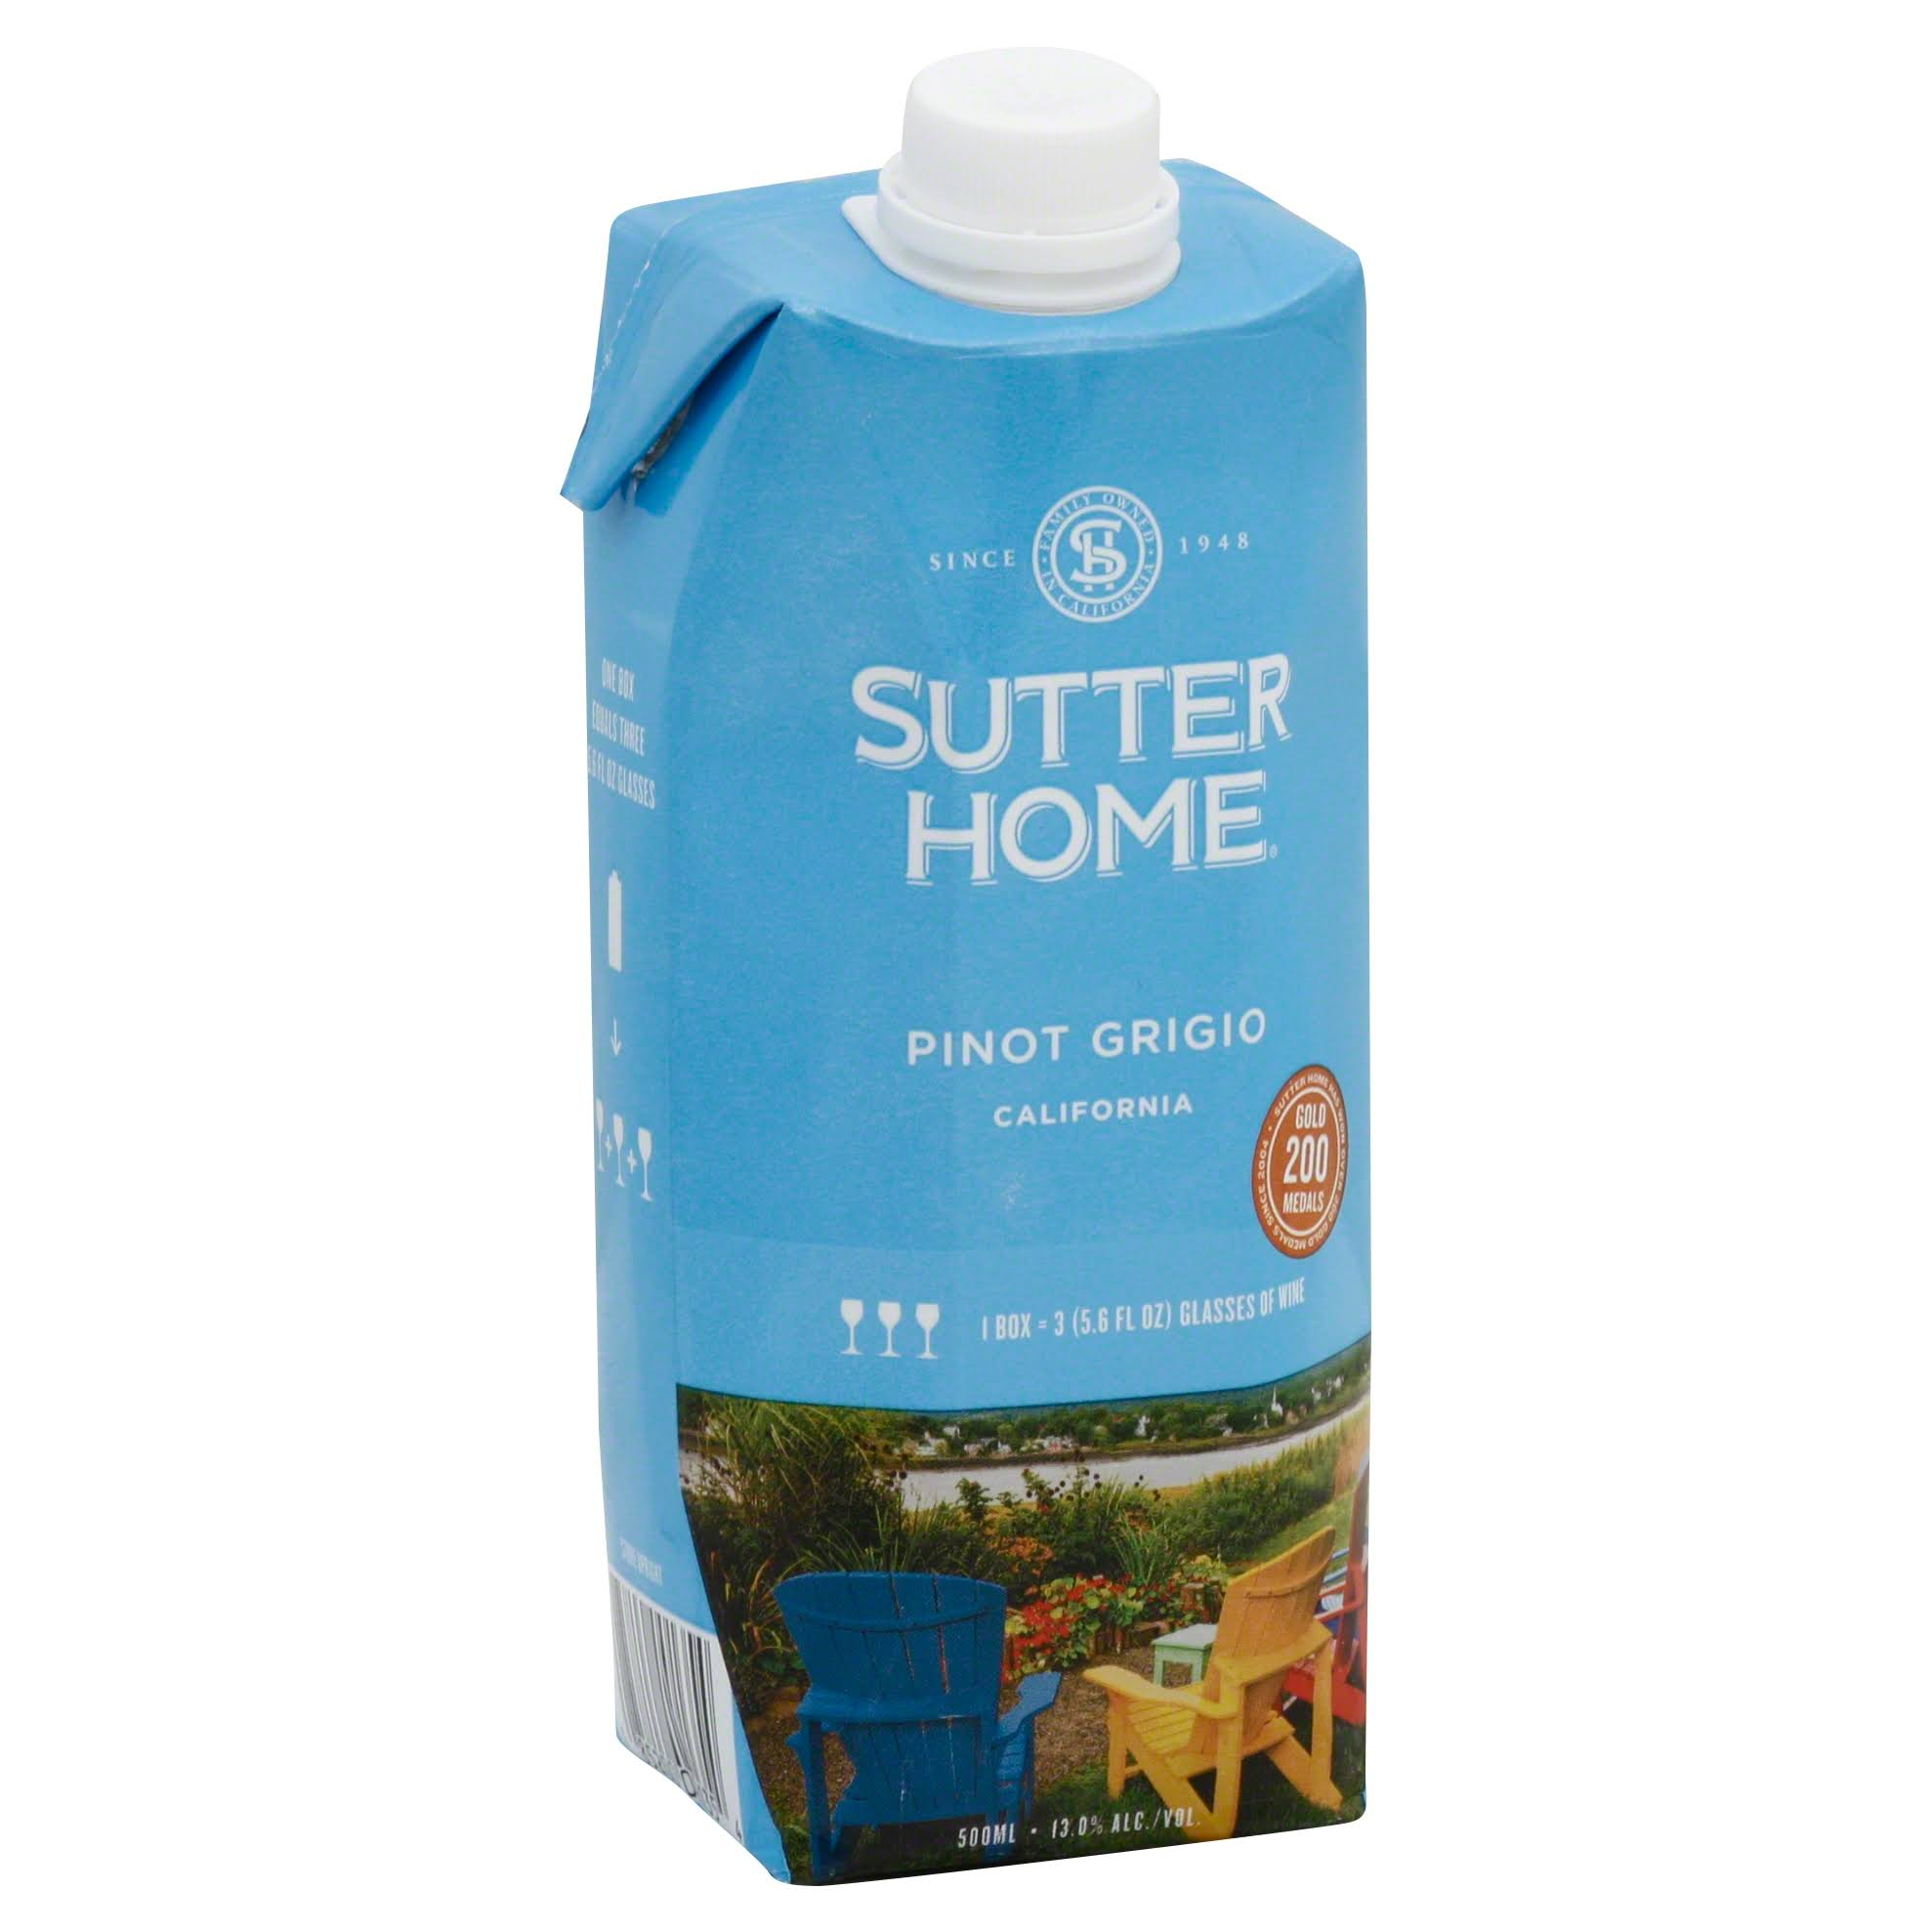 Sutter Home California Pinot Grigio Wine